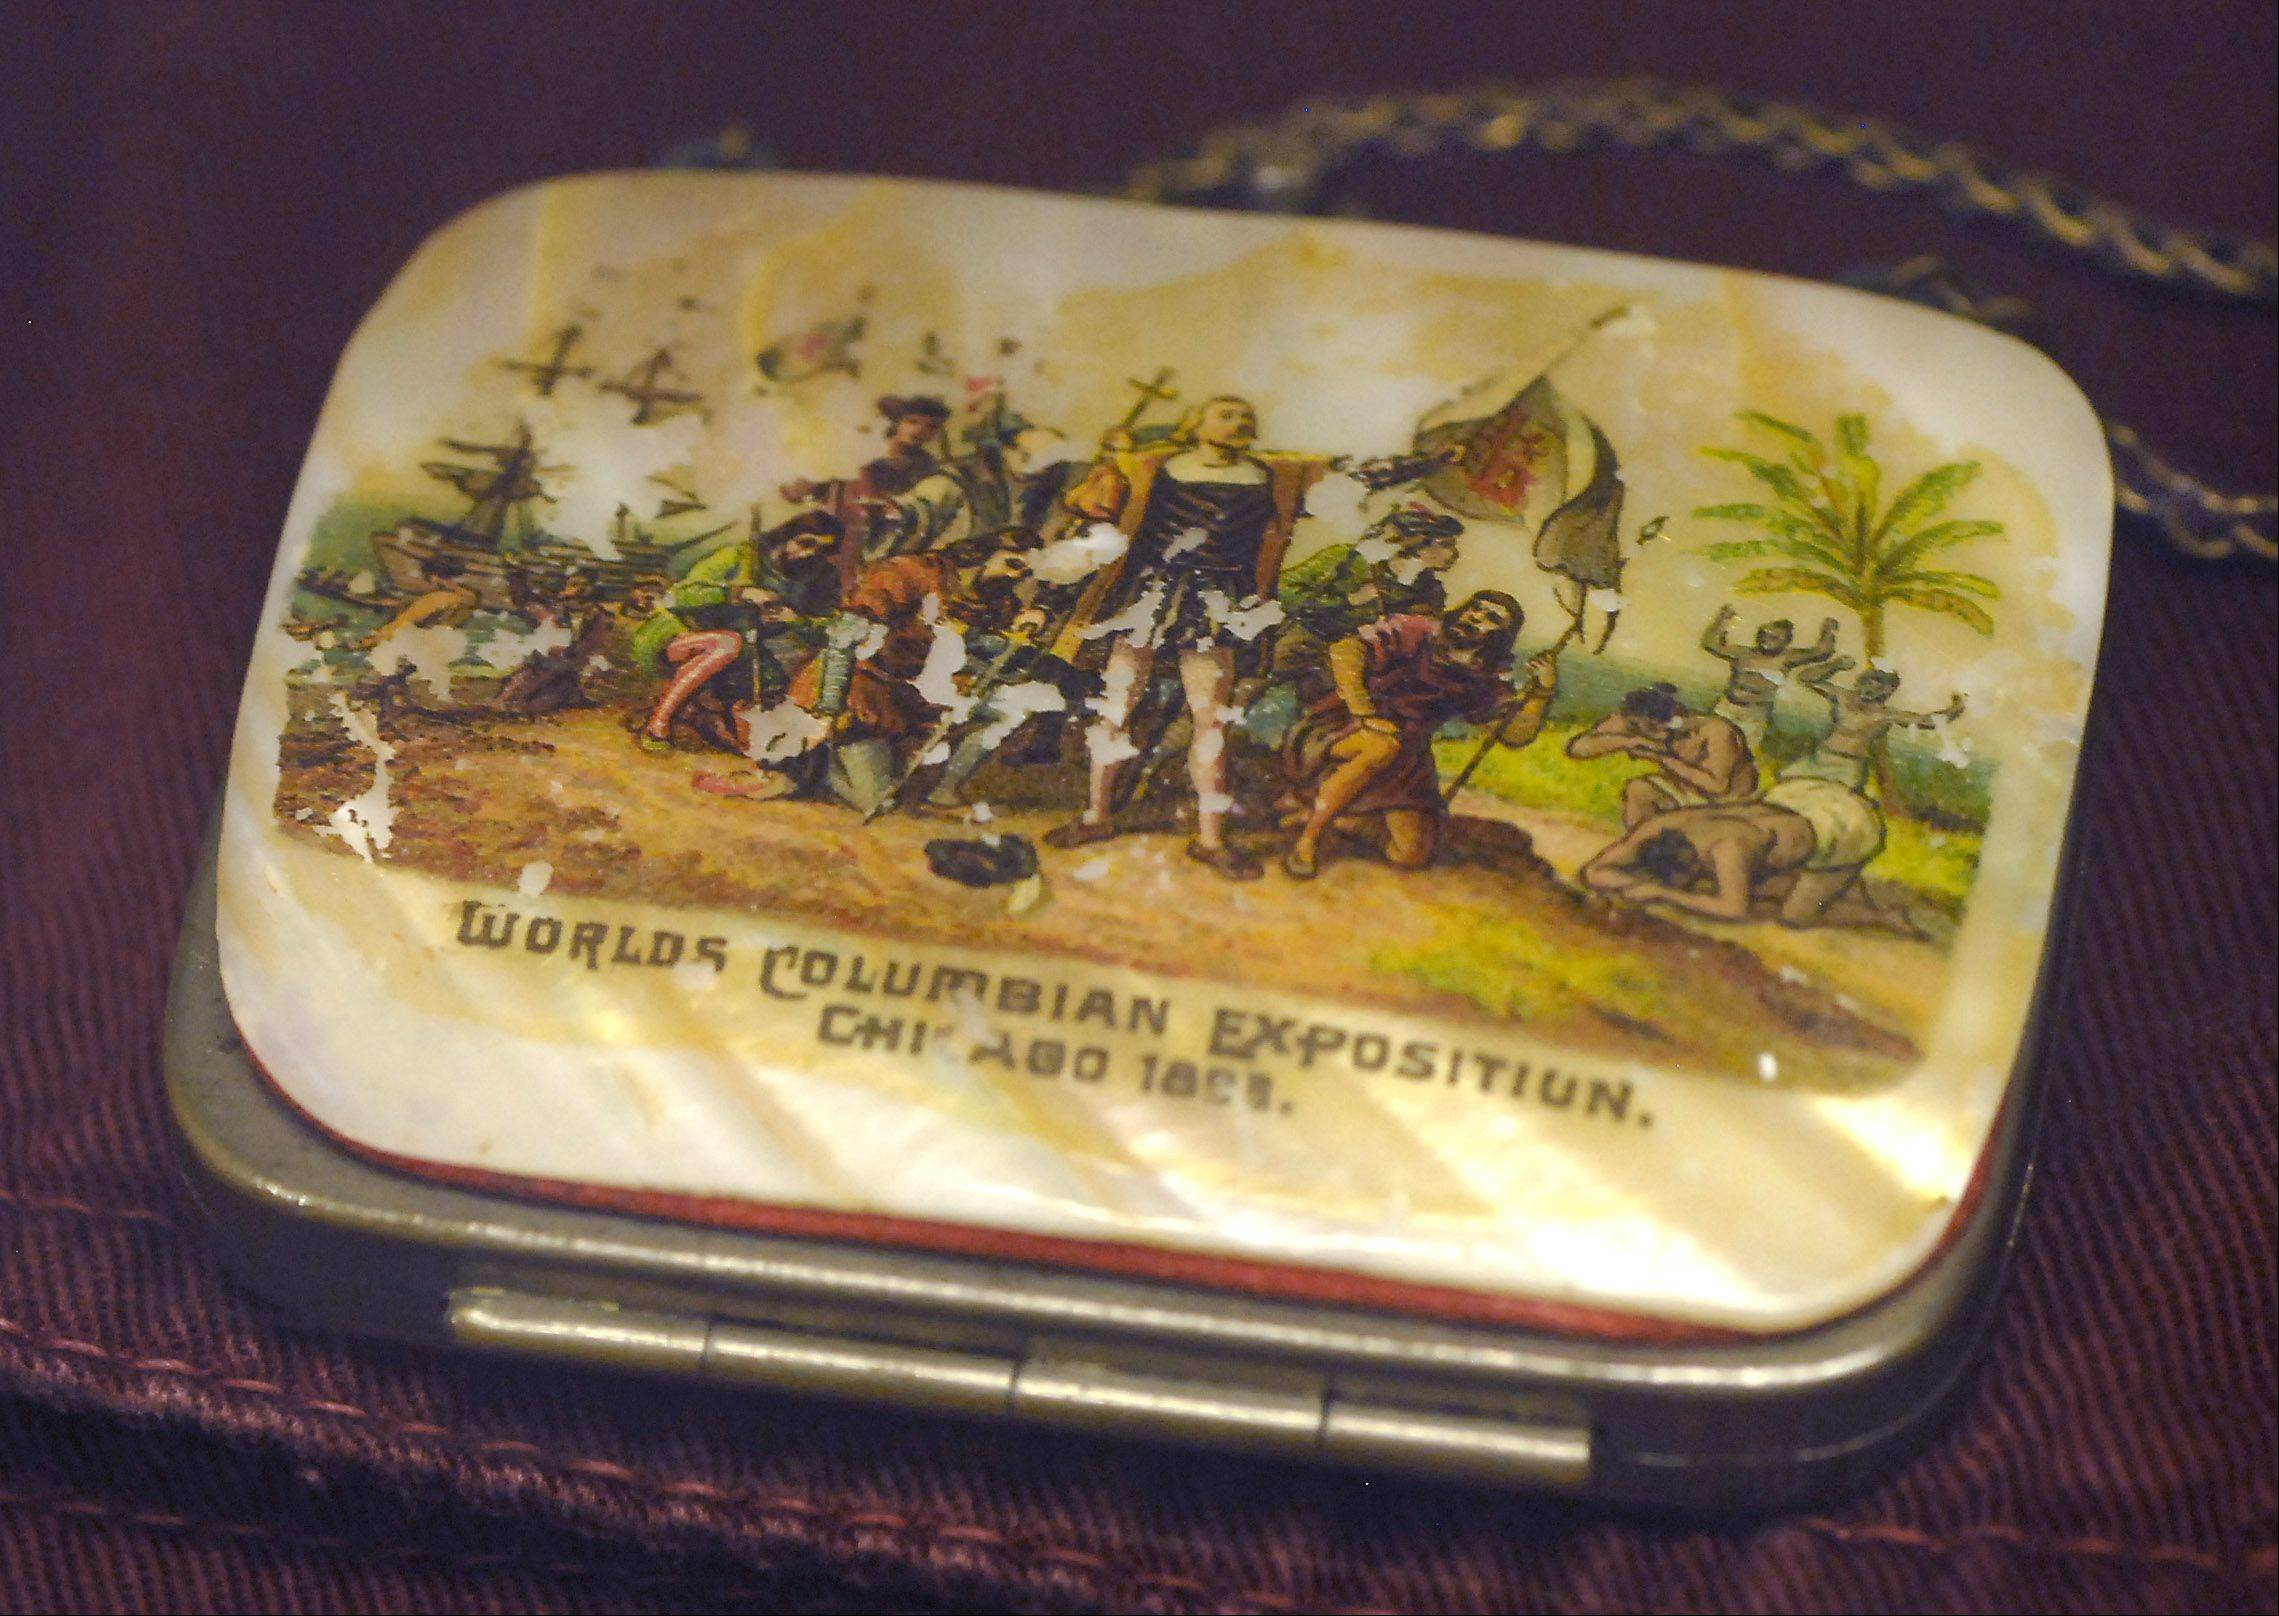 A small coin purse from the 1893 Columbian Exposition in Chicago features the landing of Columbus in the Americas.